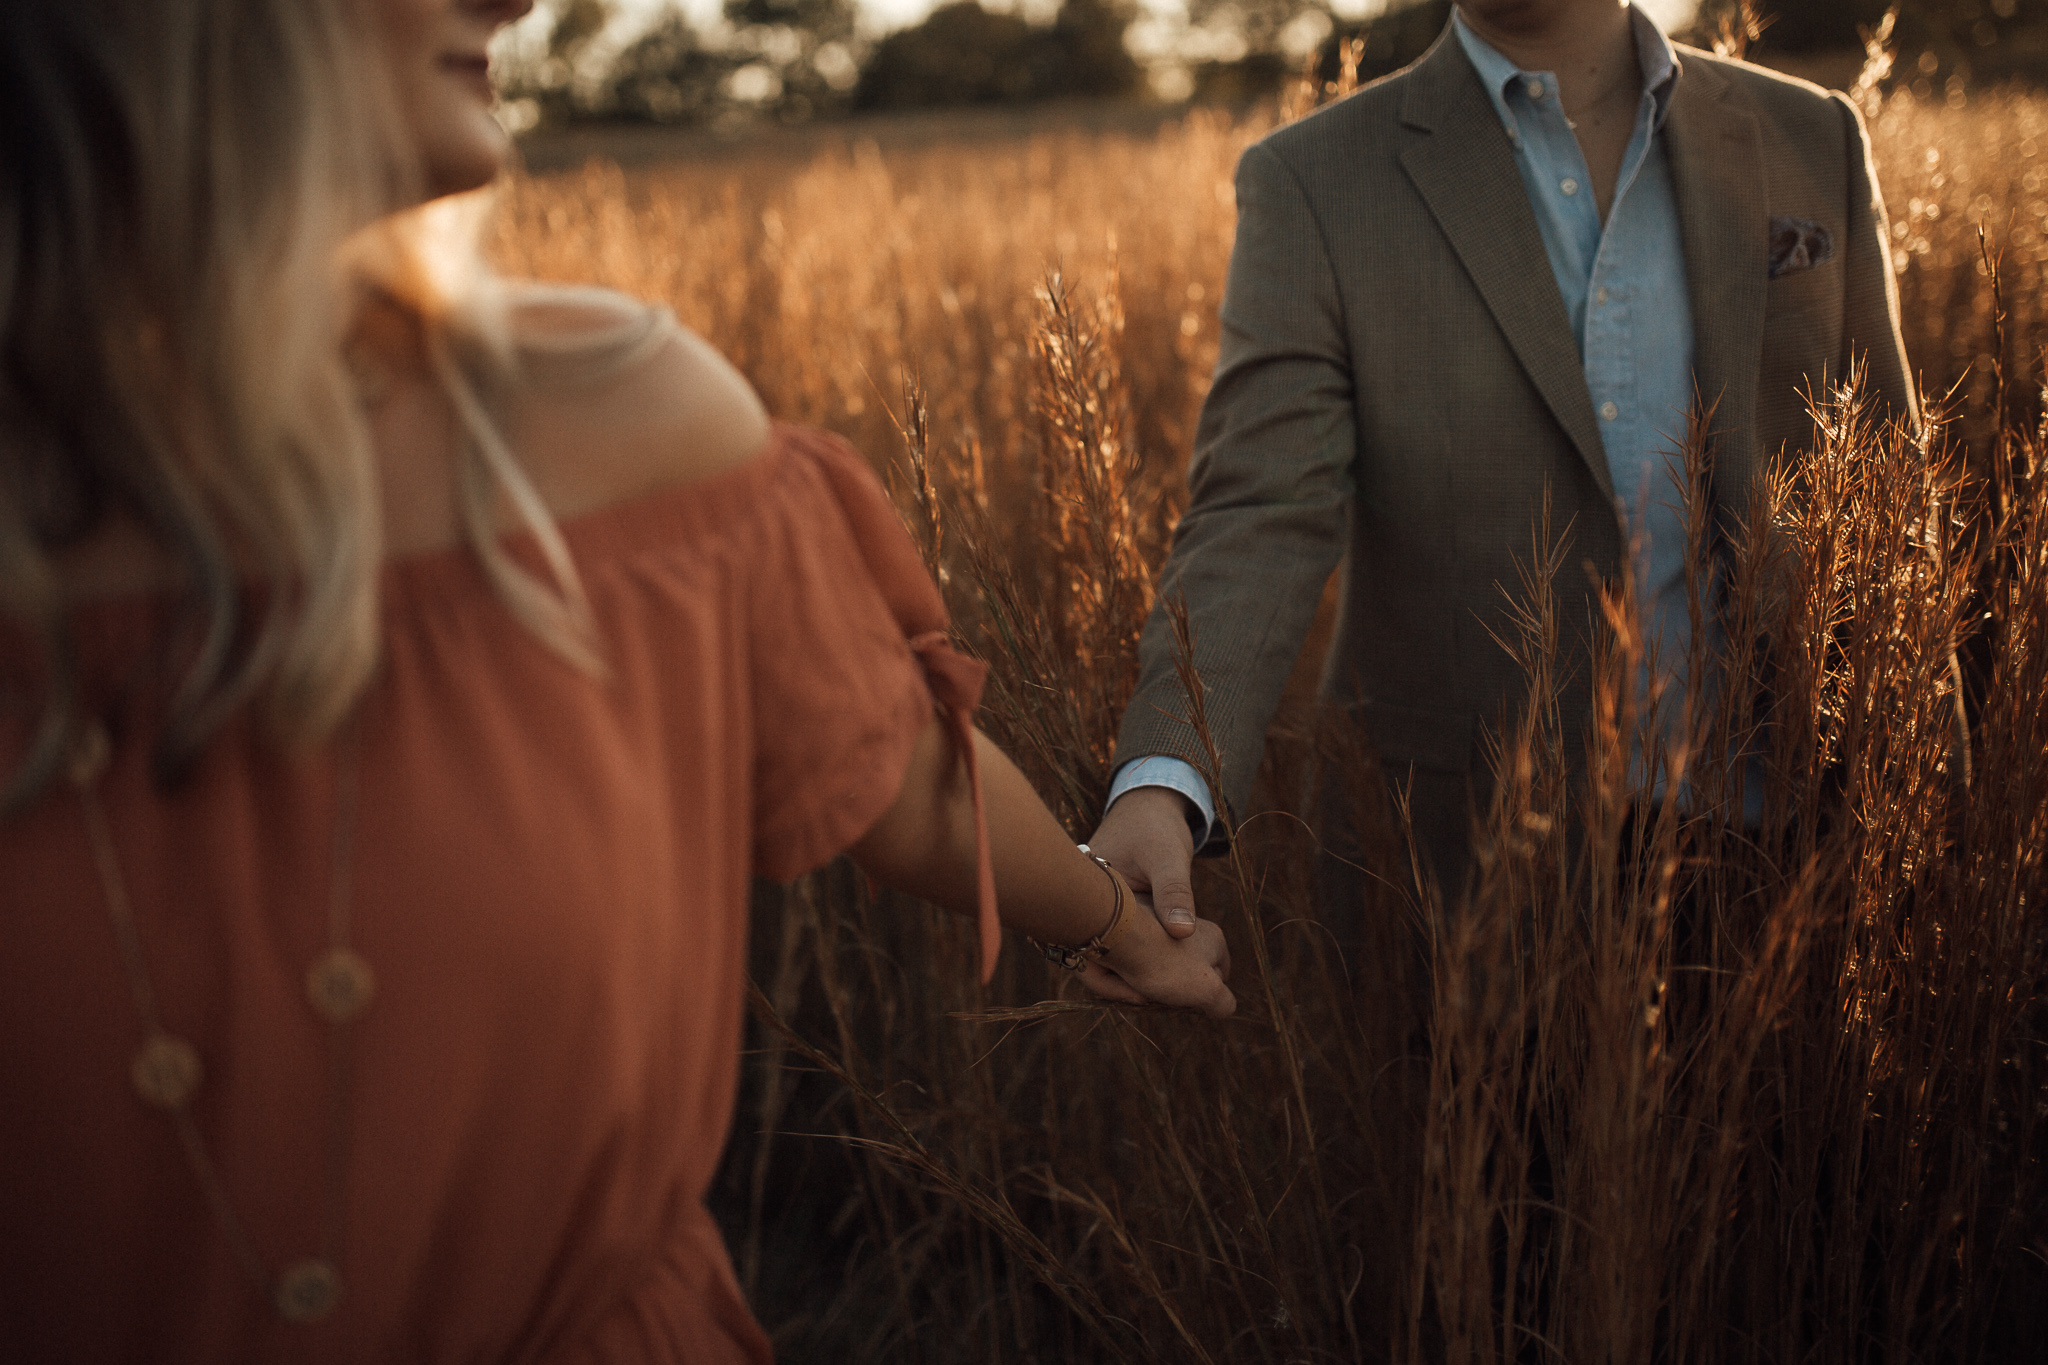 cassie-cook-photography-memphis-wedding-photographer-engagement-pictures-fall-pictures-hernando-ms-ryan-alexis-hernando-wedding-photographer